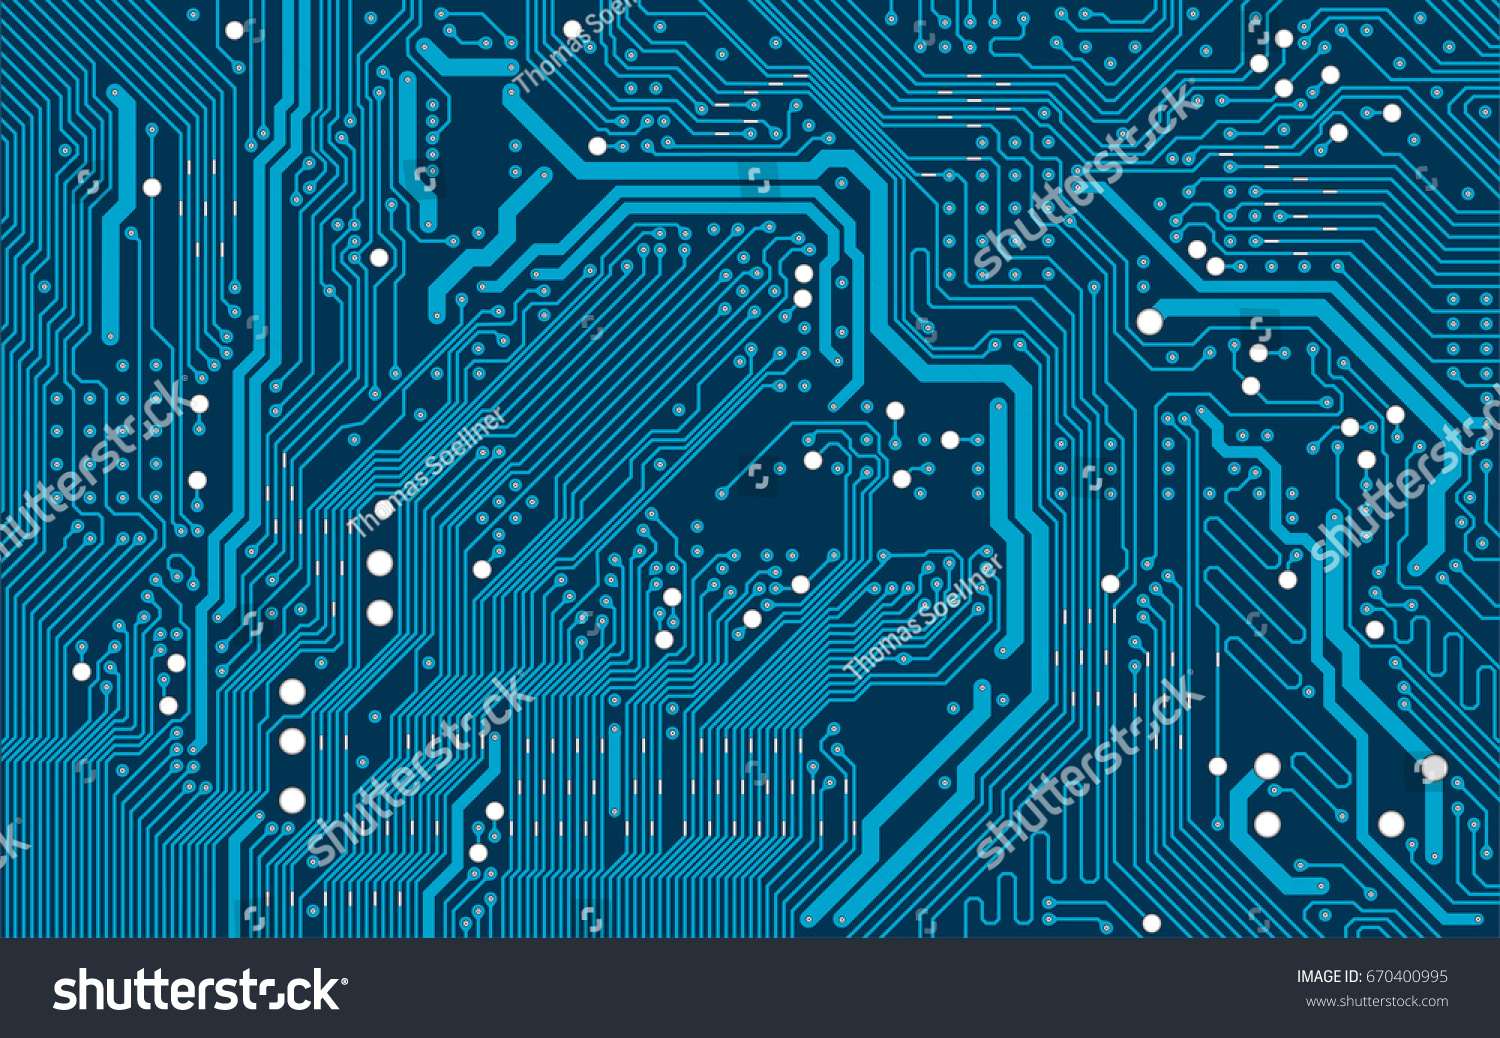 Vector Blue Electronic Circuit Board Background Ez Canvas Abstract With Old Computer